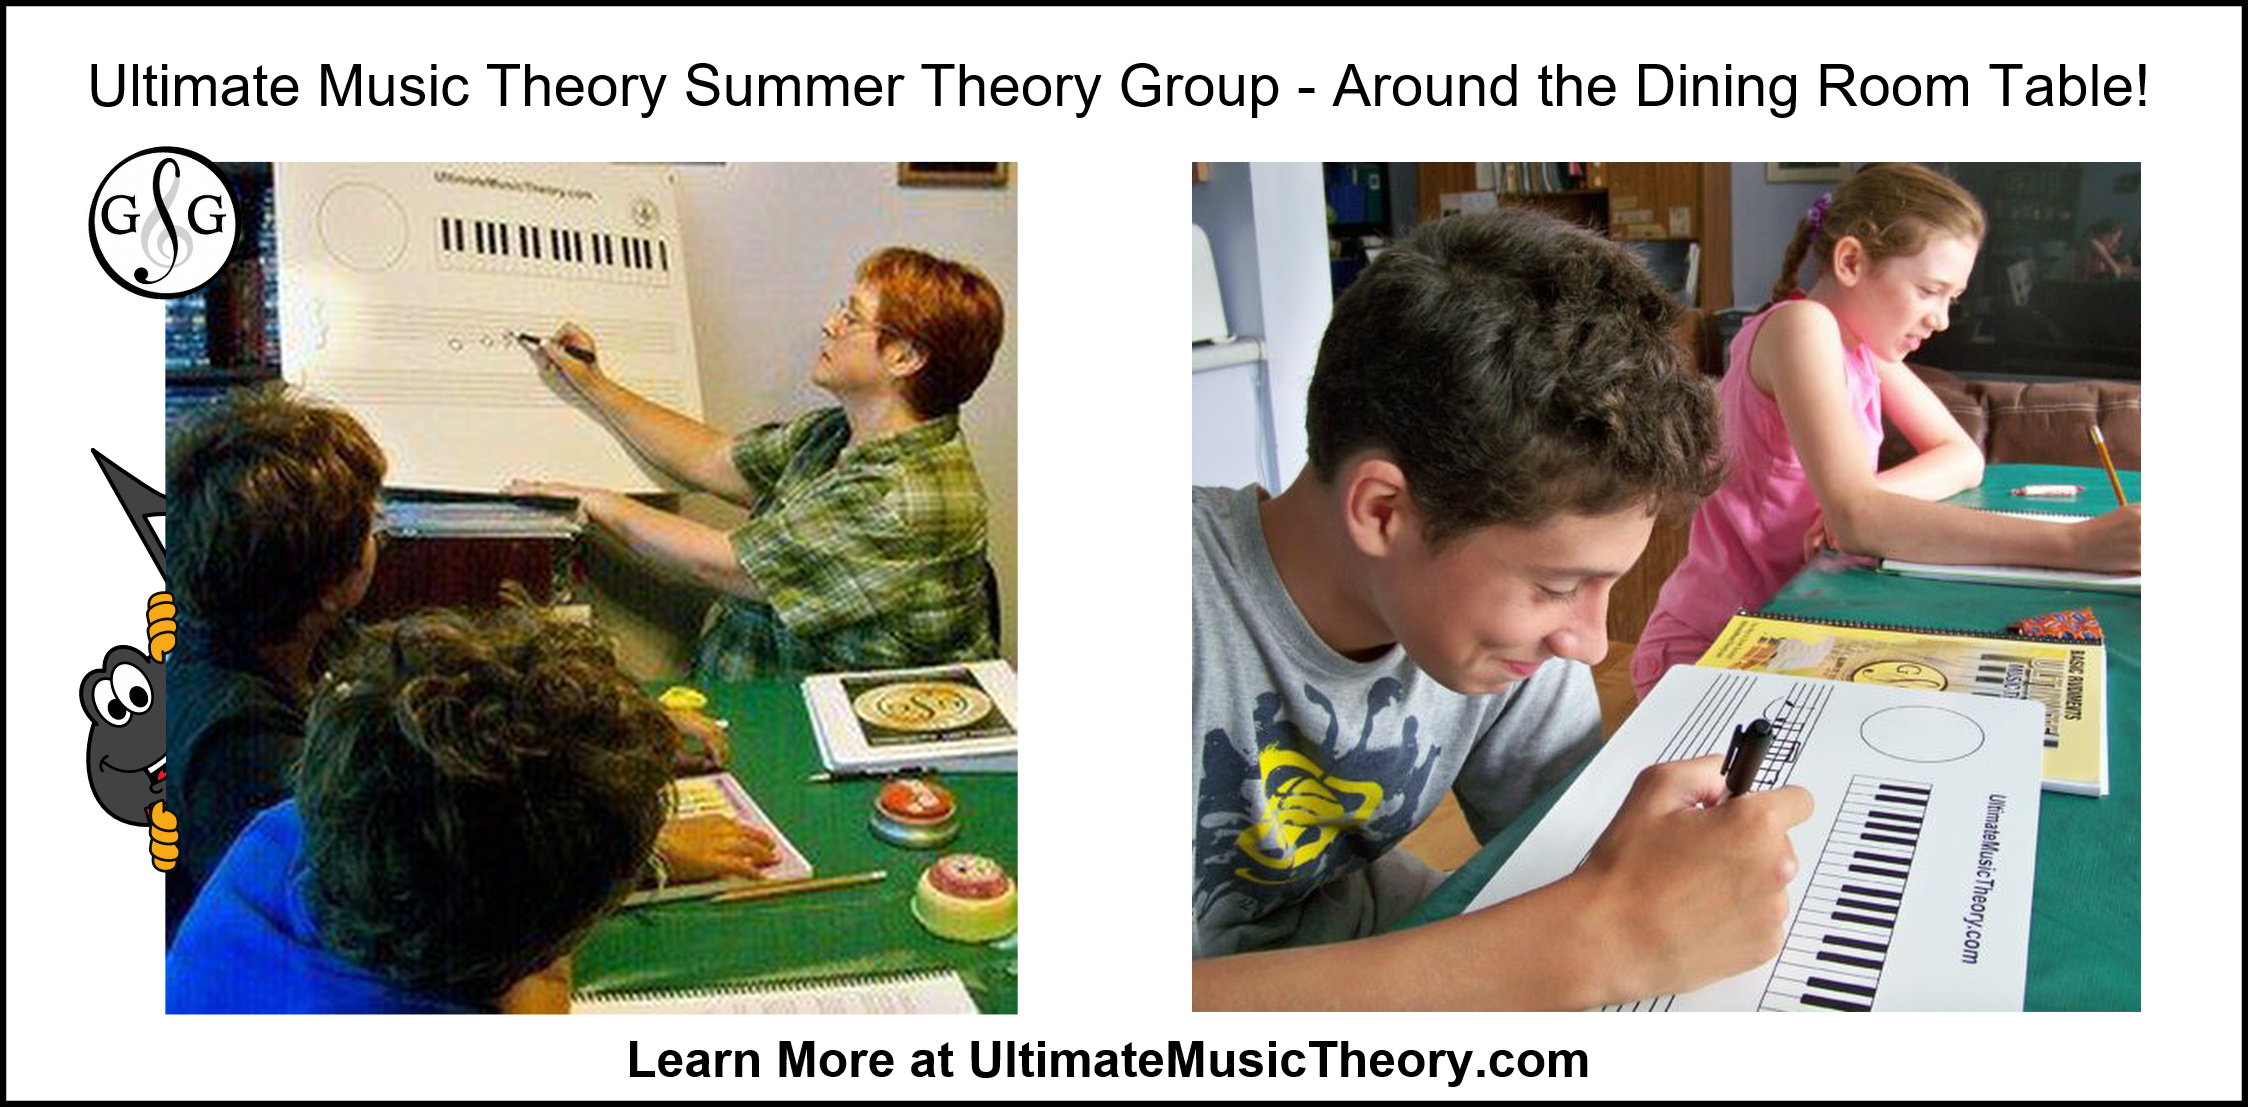 Ultimate Music Theory Summer Theory Group